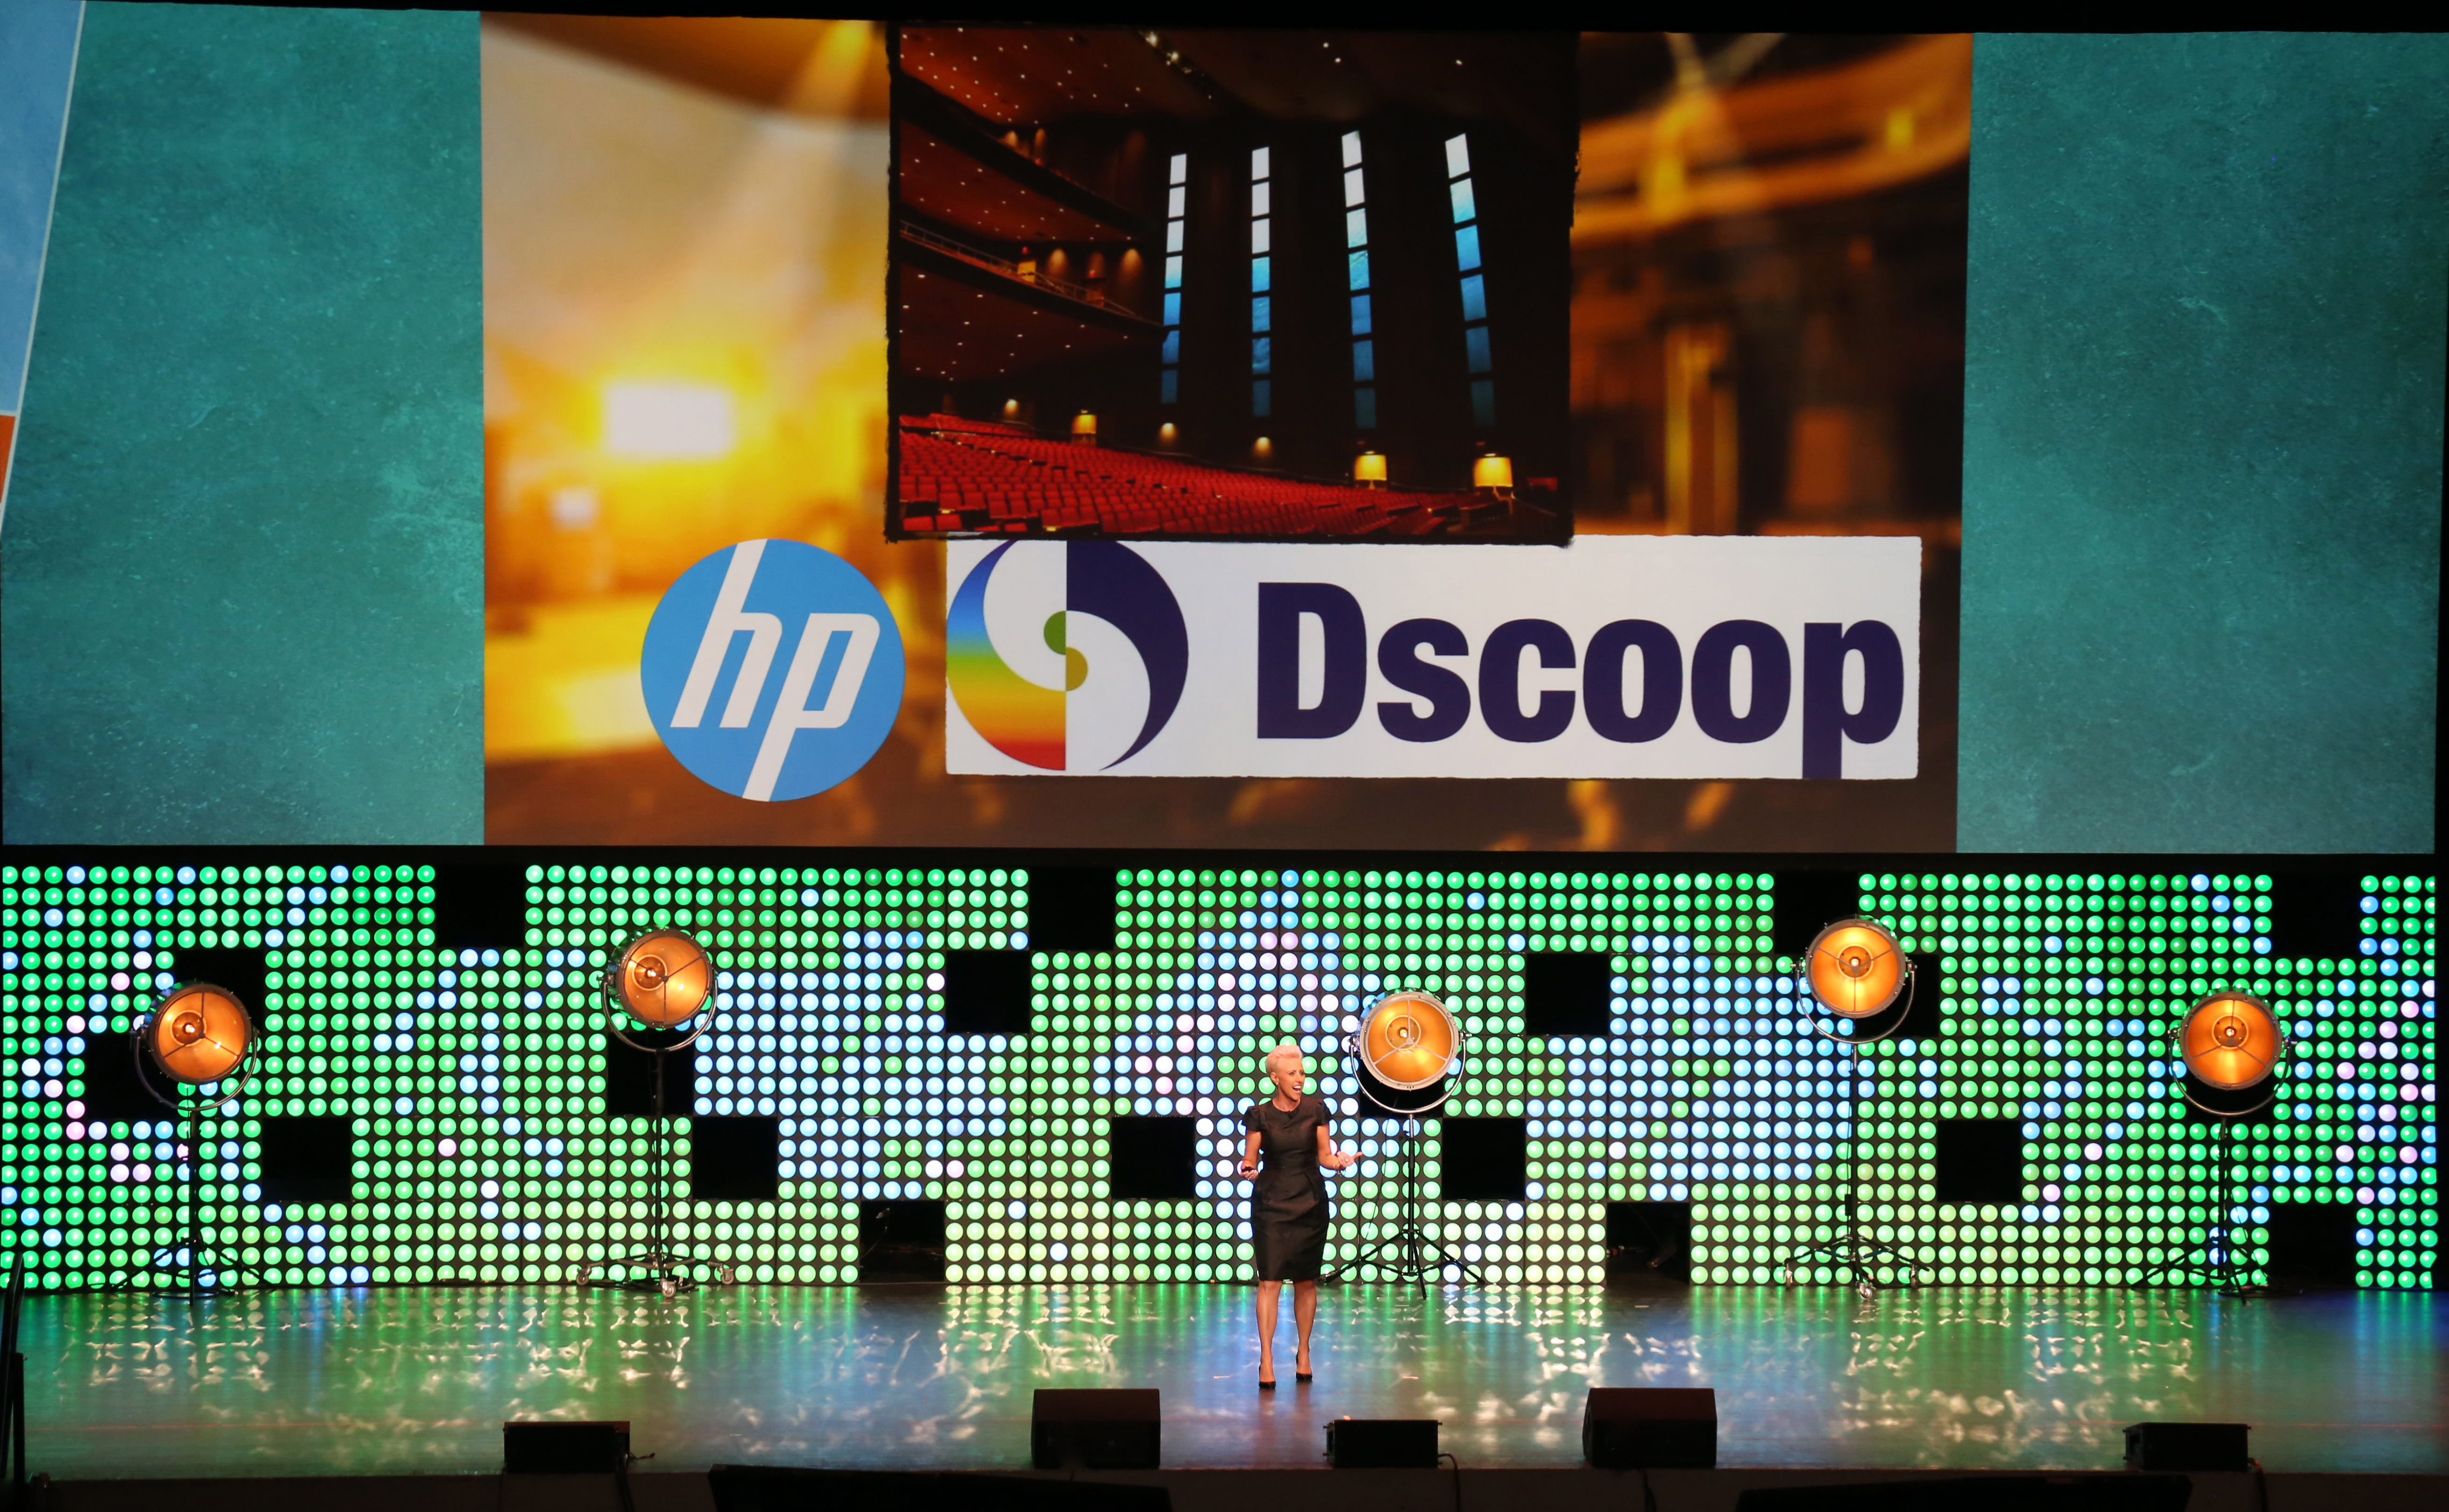 Laura HP Dscoop Conference Keynote 9